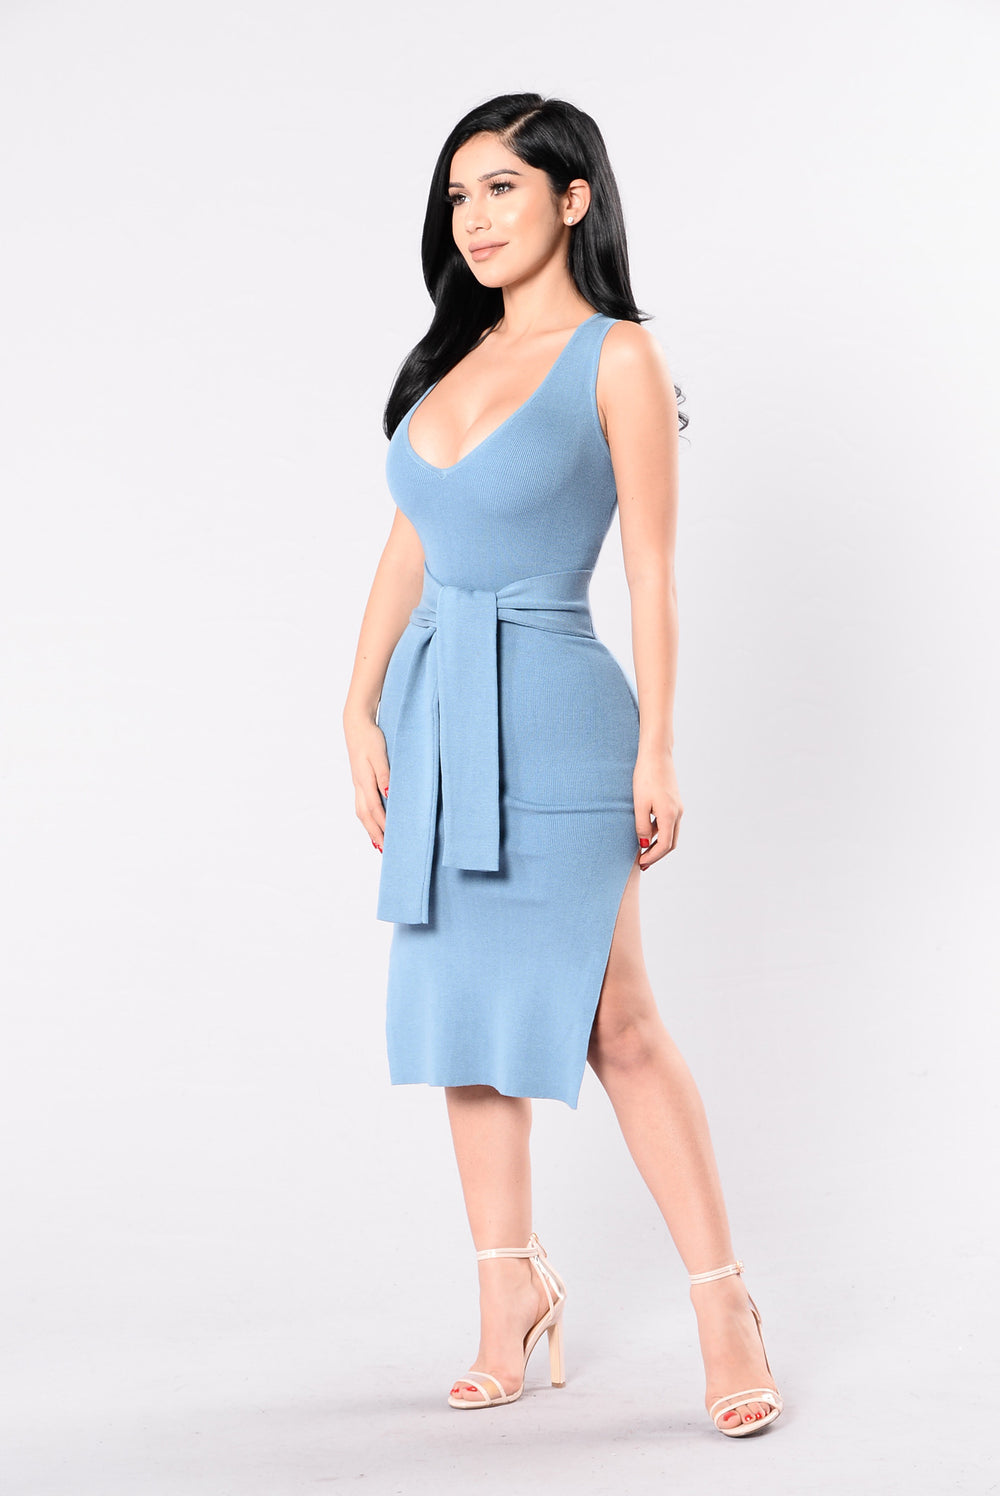 He Loves My Style Dress - Niagara Blue